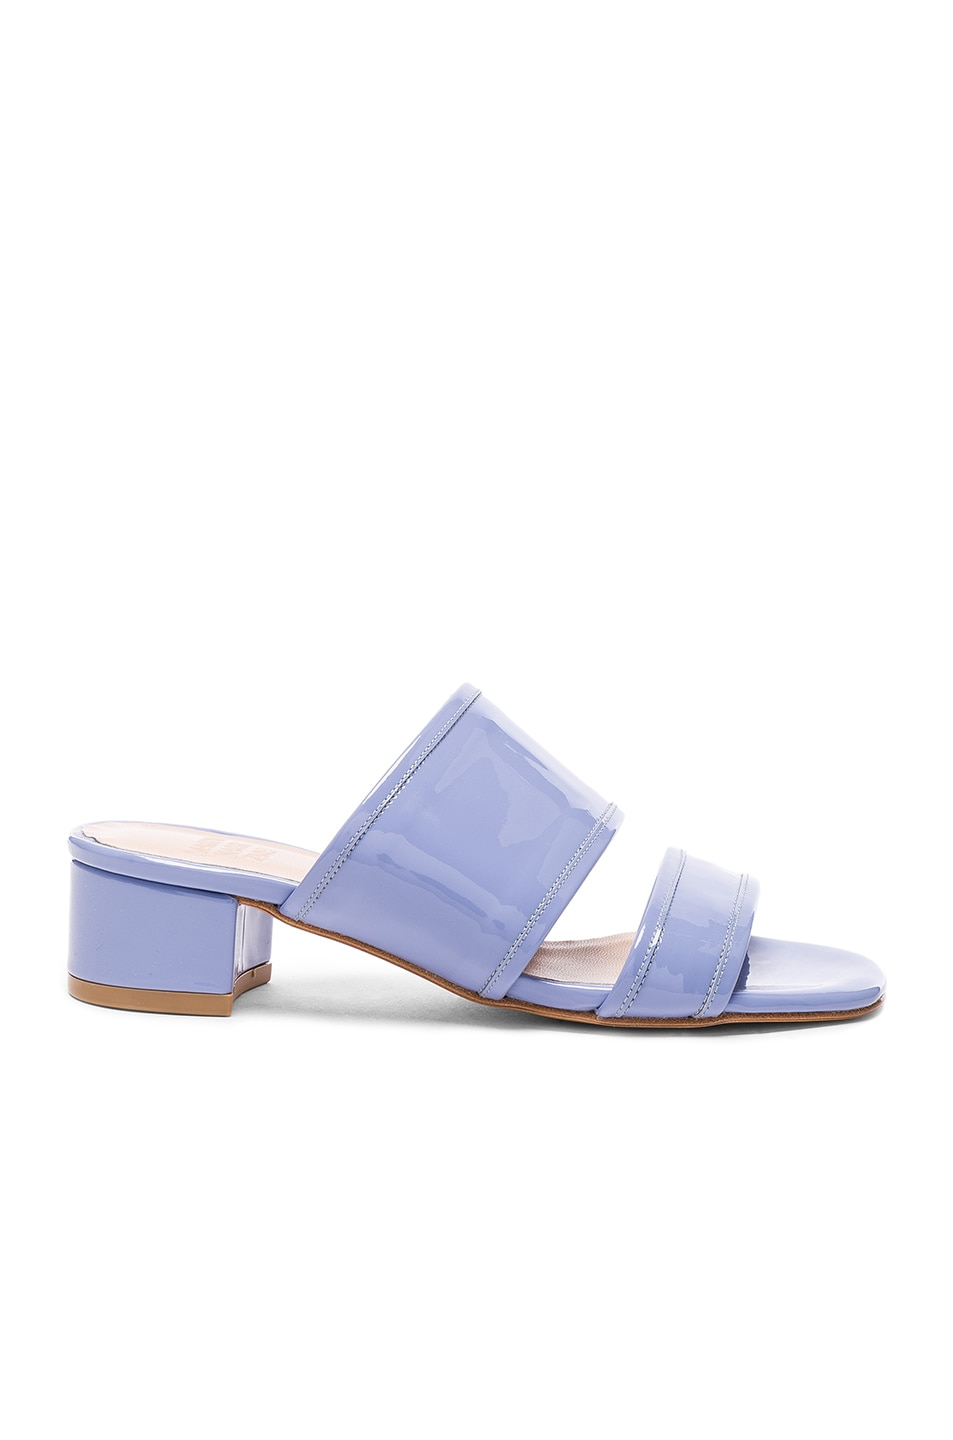 Image 1 of Maryam Nassir Zadeh Patent Leather Martina Slide Sandals in Periwinkle Patent